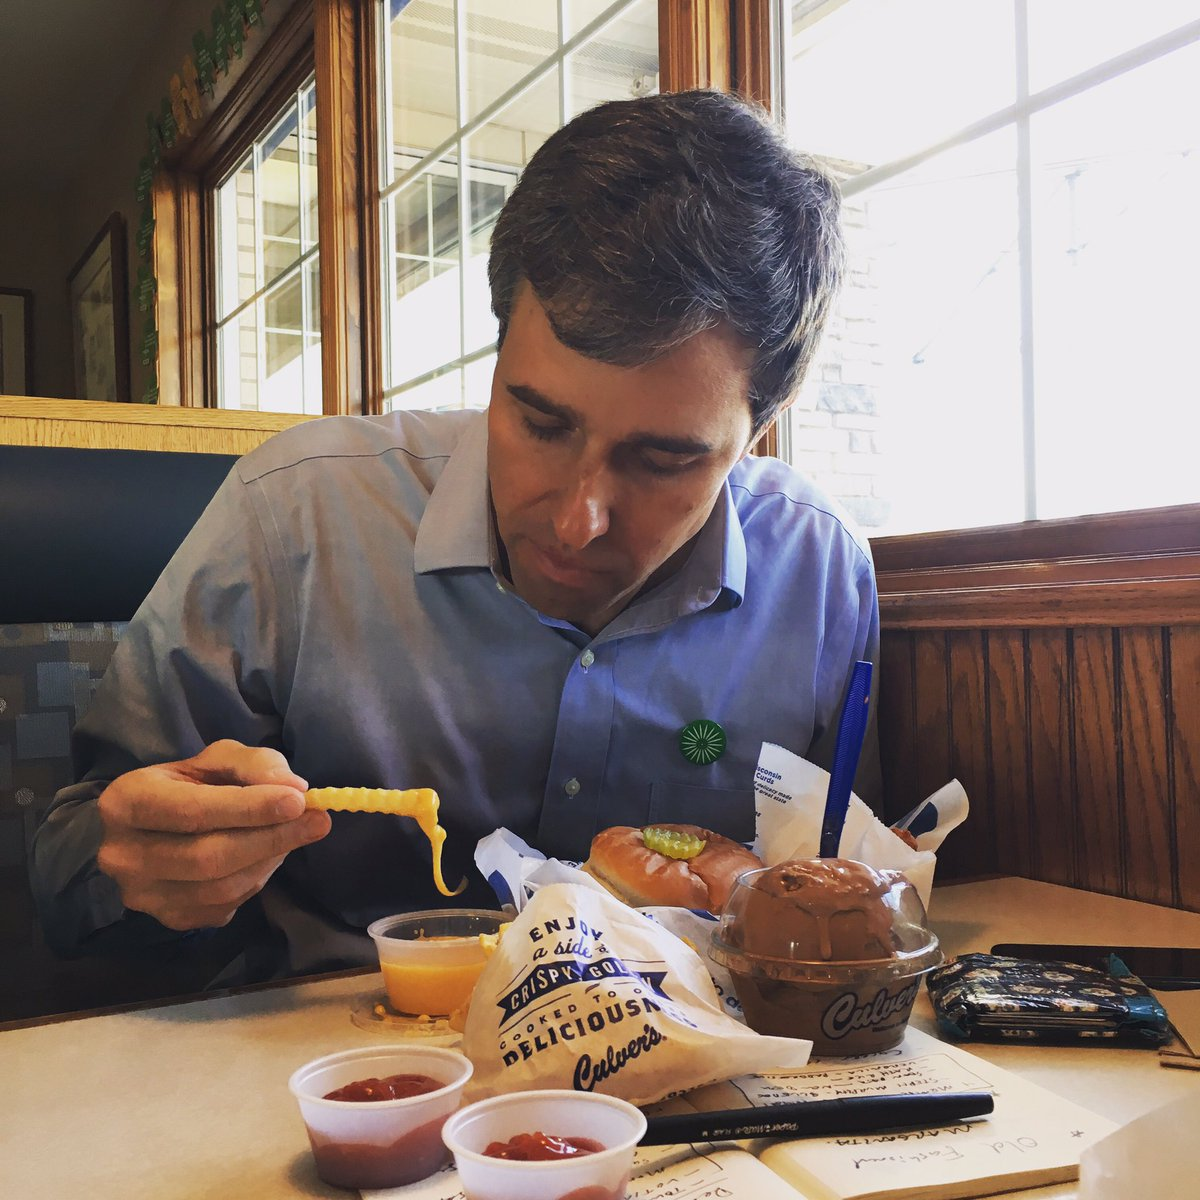 Back in Wisconsin. Back at Culver's.